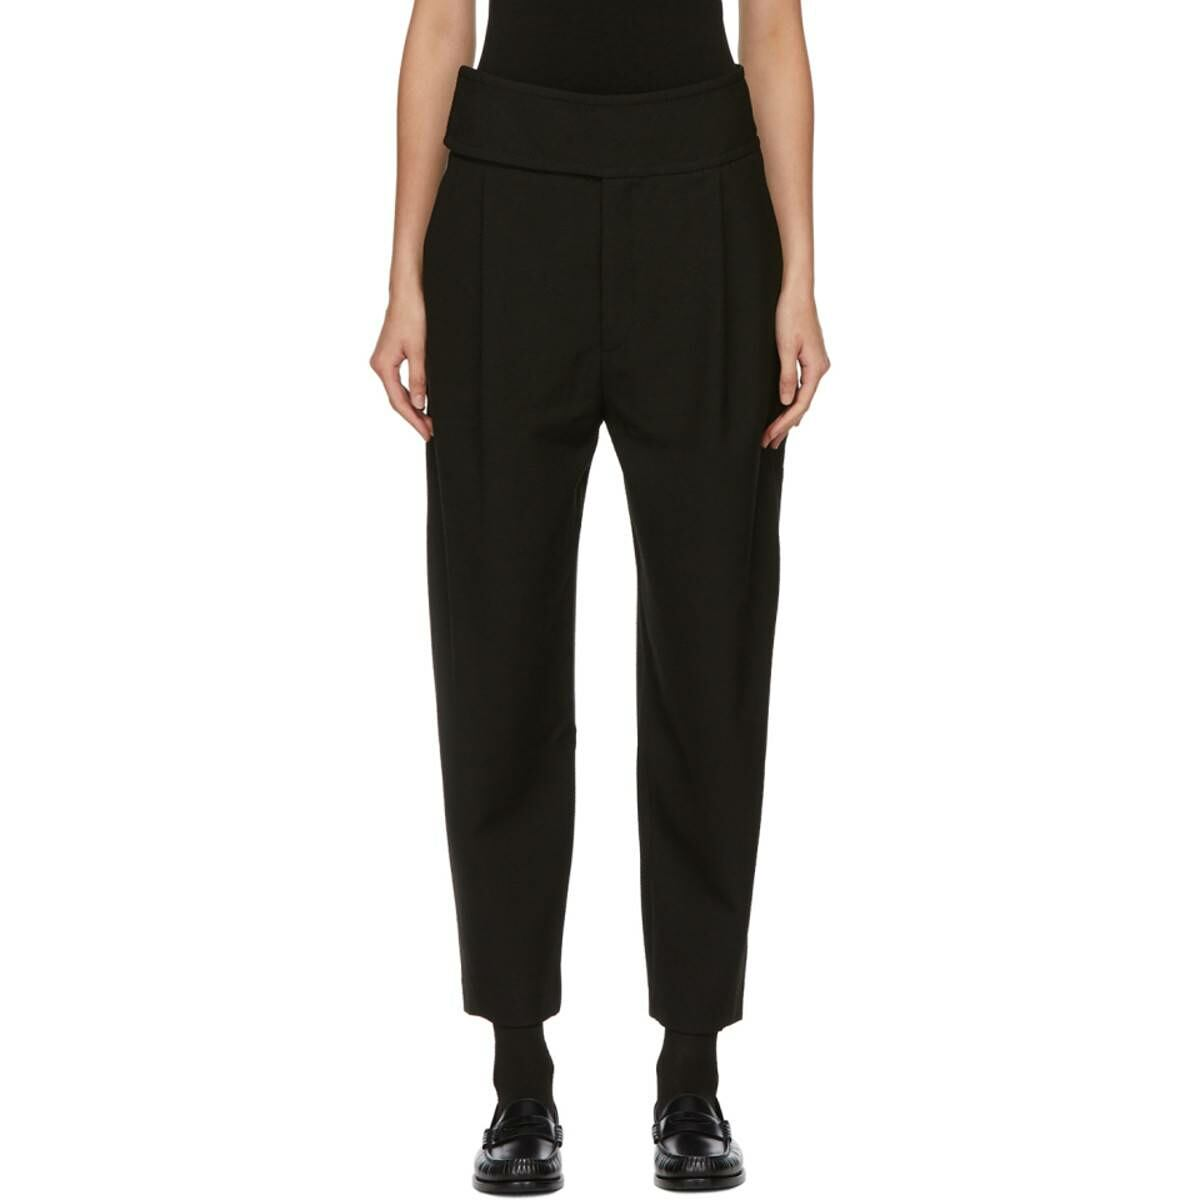 Toteme Black Lombardy Trousers Ssense USA WOMEN Women FASHION Womens TROUSERS